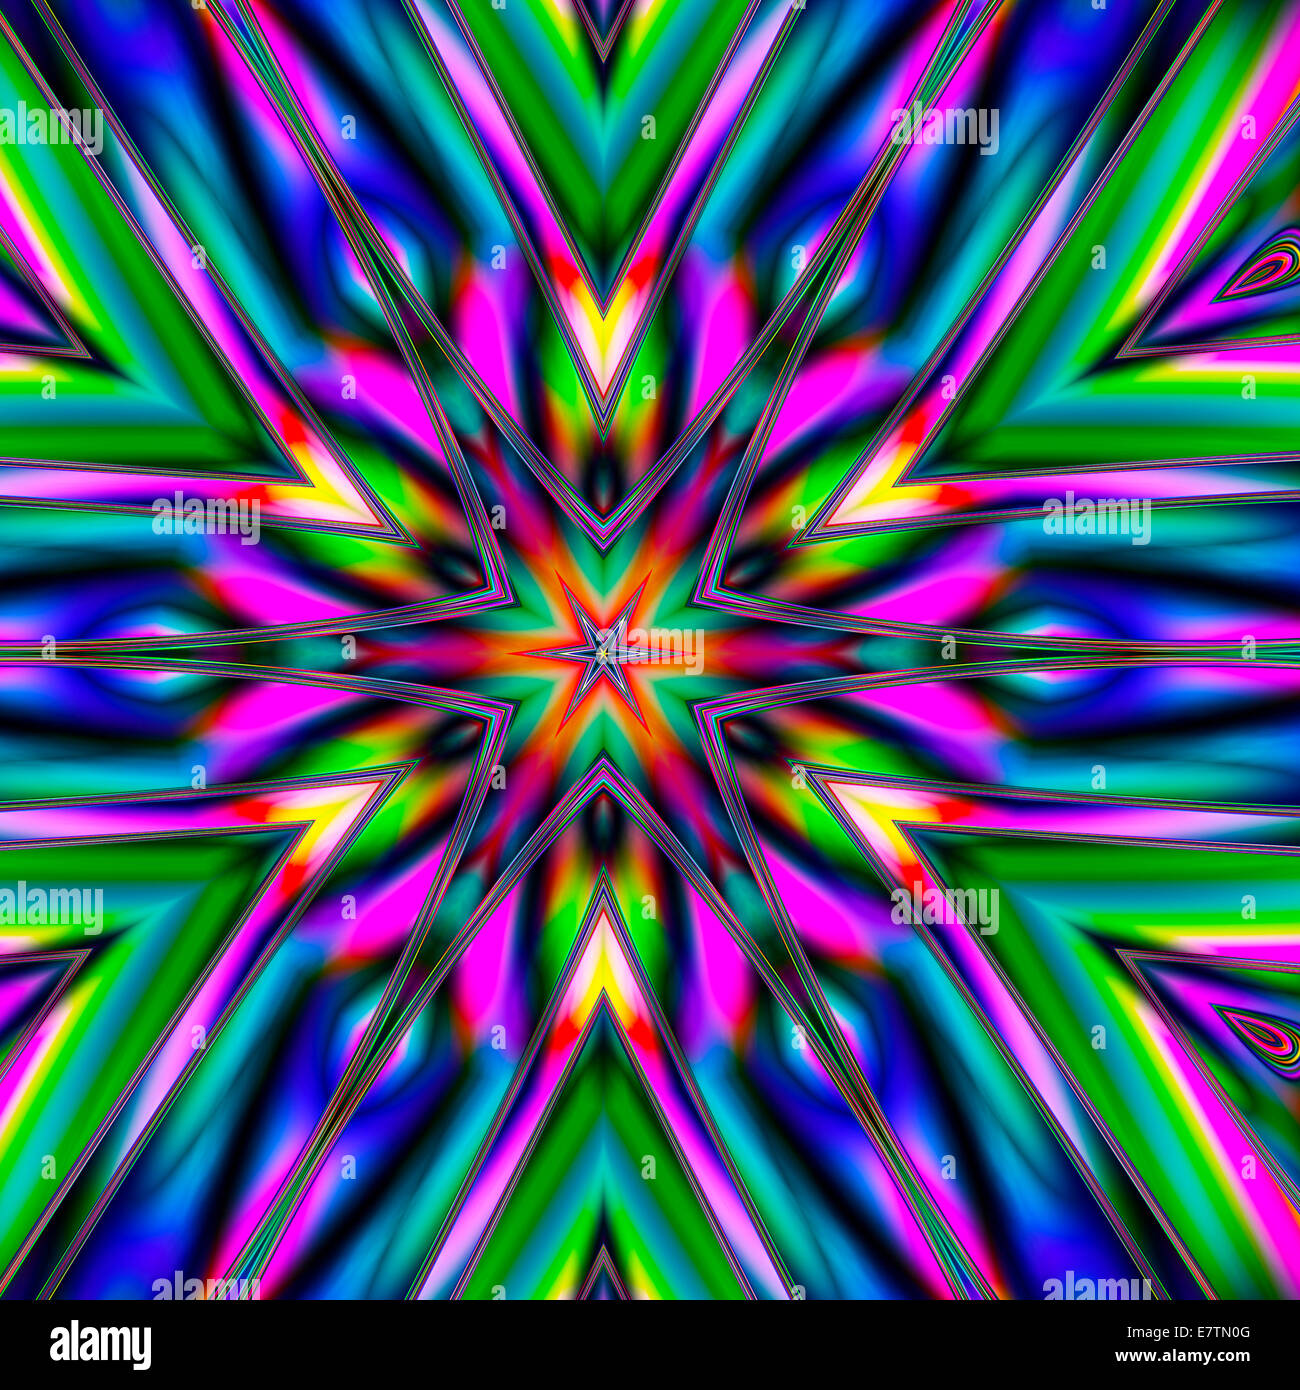 Psychedelic abstract pattern, computer artwork. - Stock Image